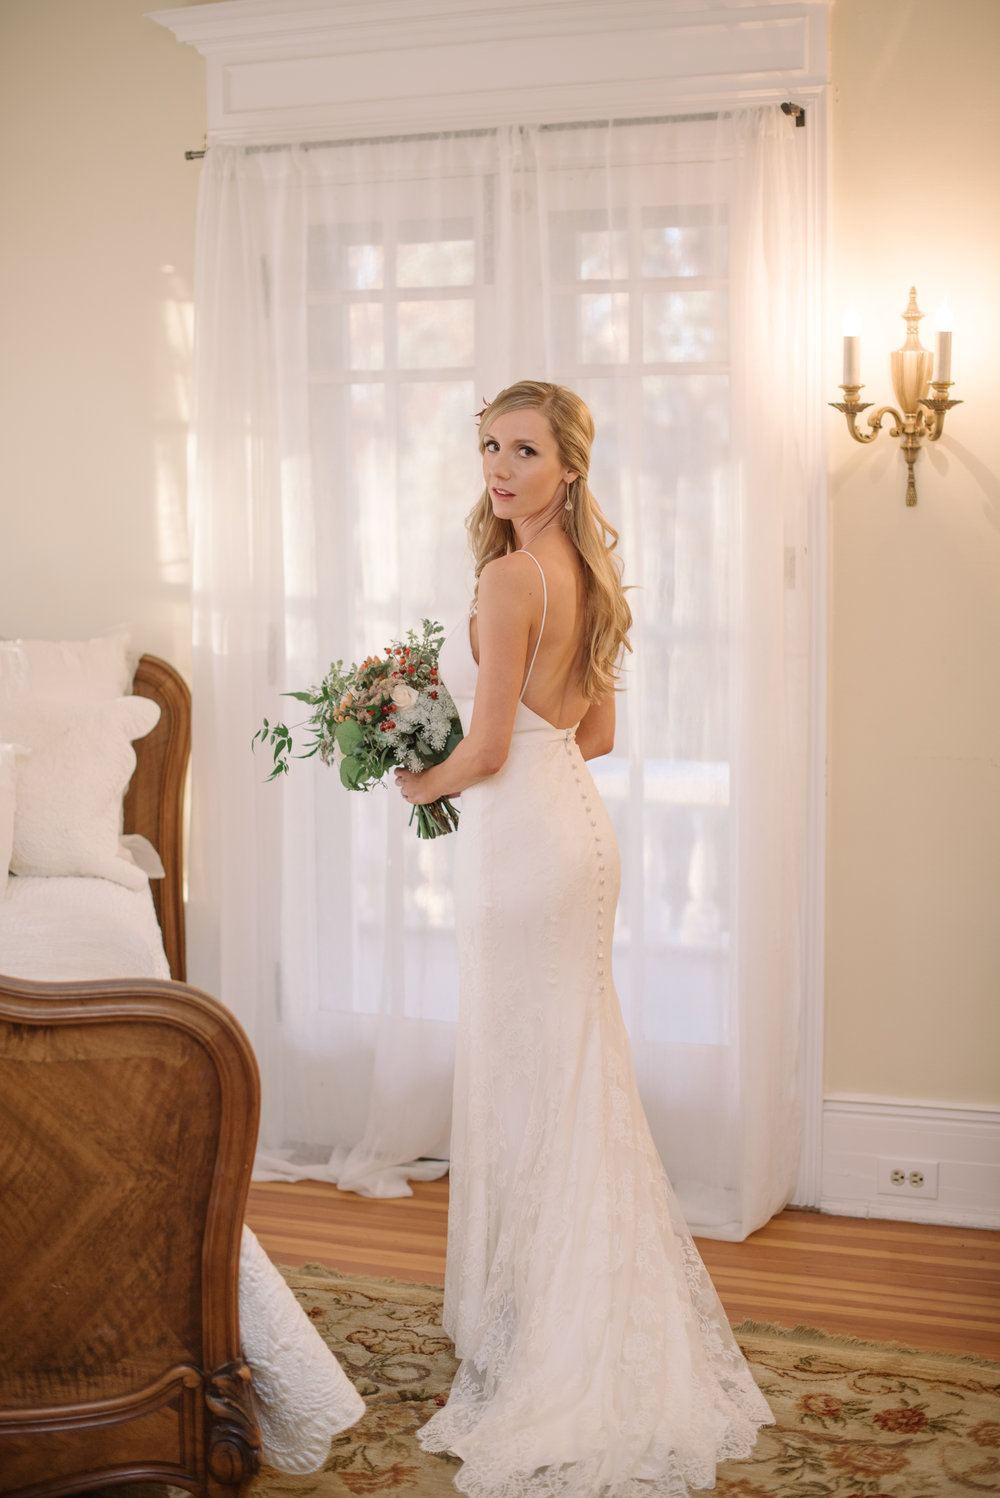 I love this photo because it has beautiful soft and warm light. There is still a lot of emotion, and yet in some ways it is also a classic bridal portrait. As an artist, I want to keep my viewer's eye on the image which is exactly what you get here.